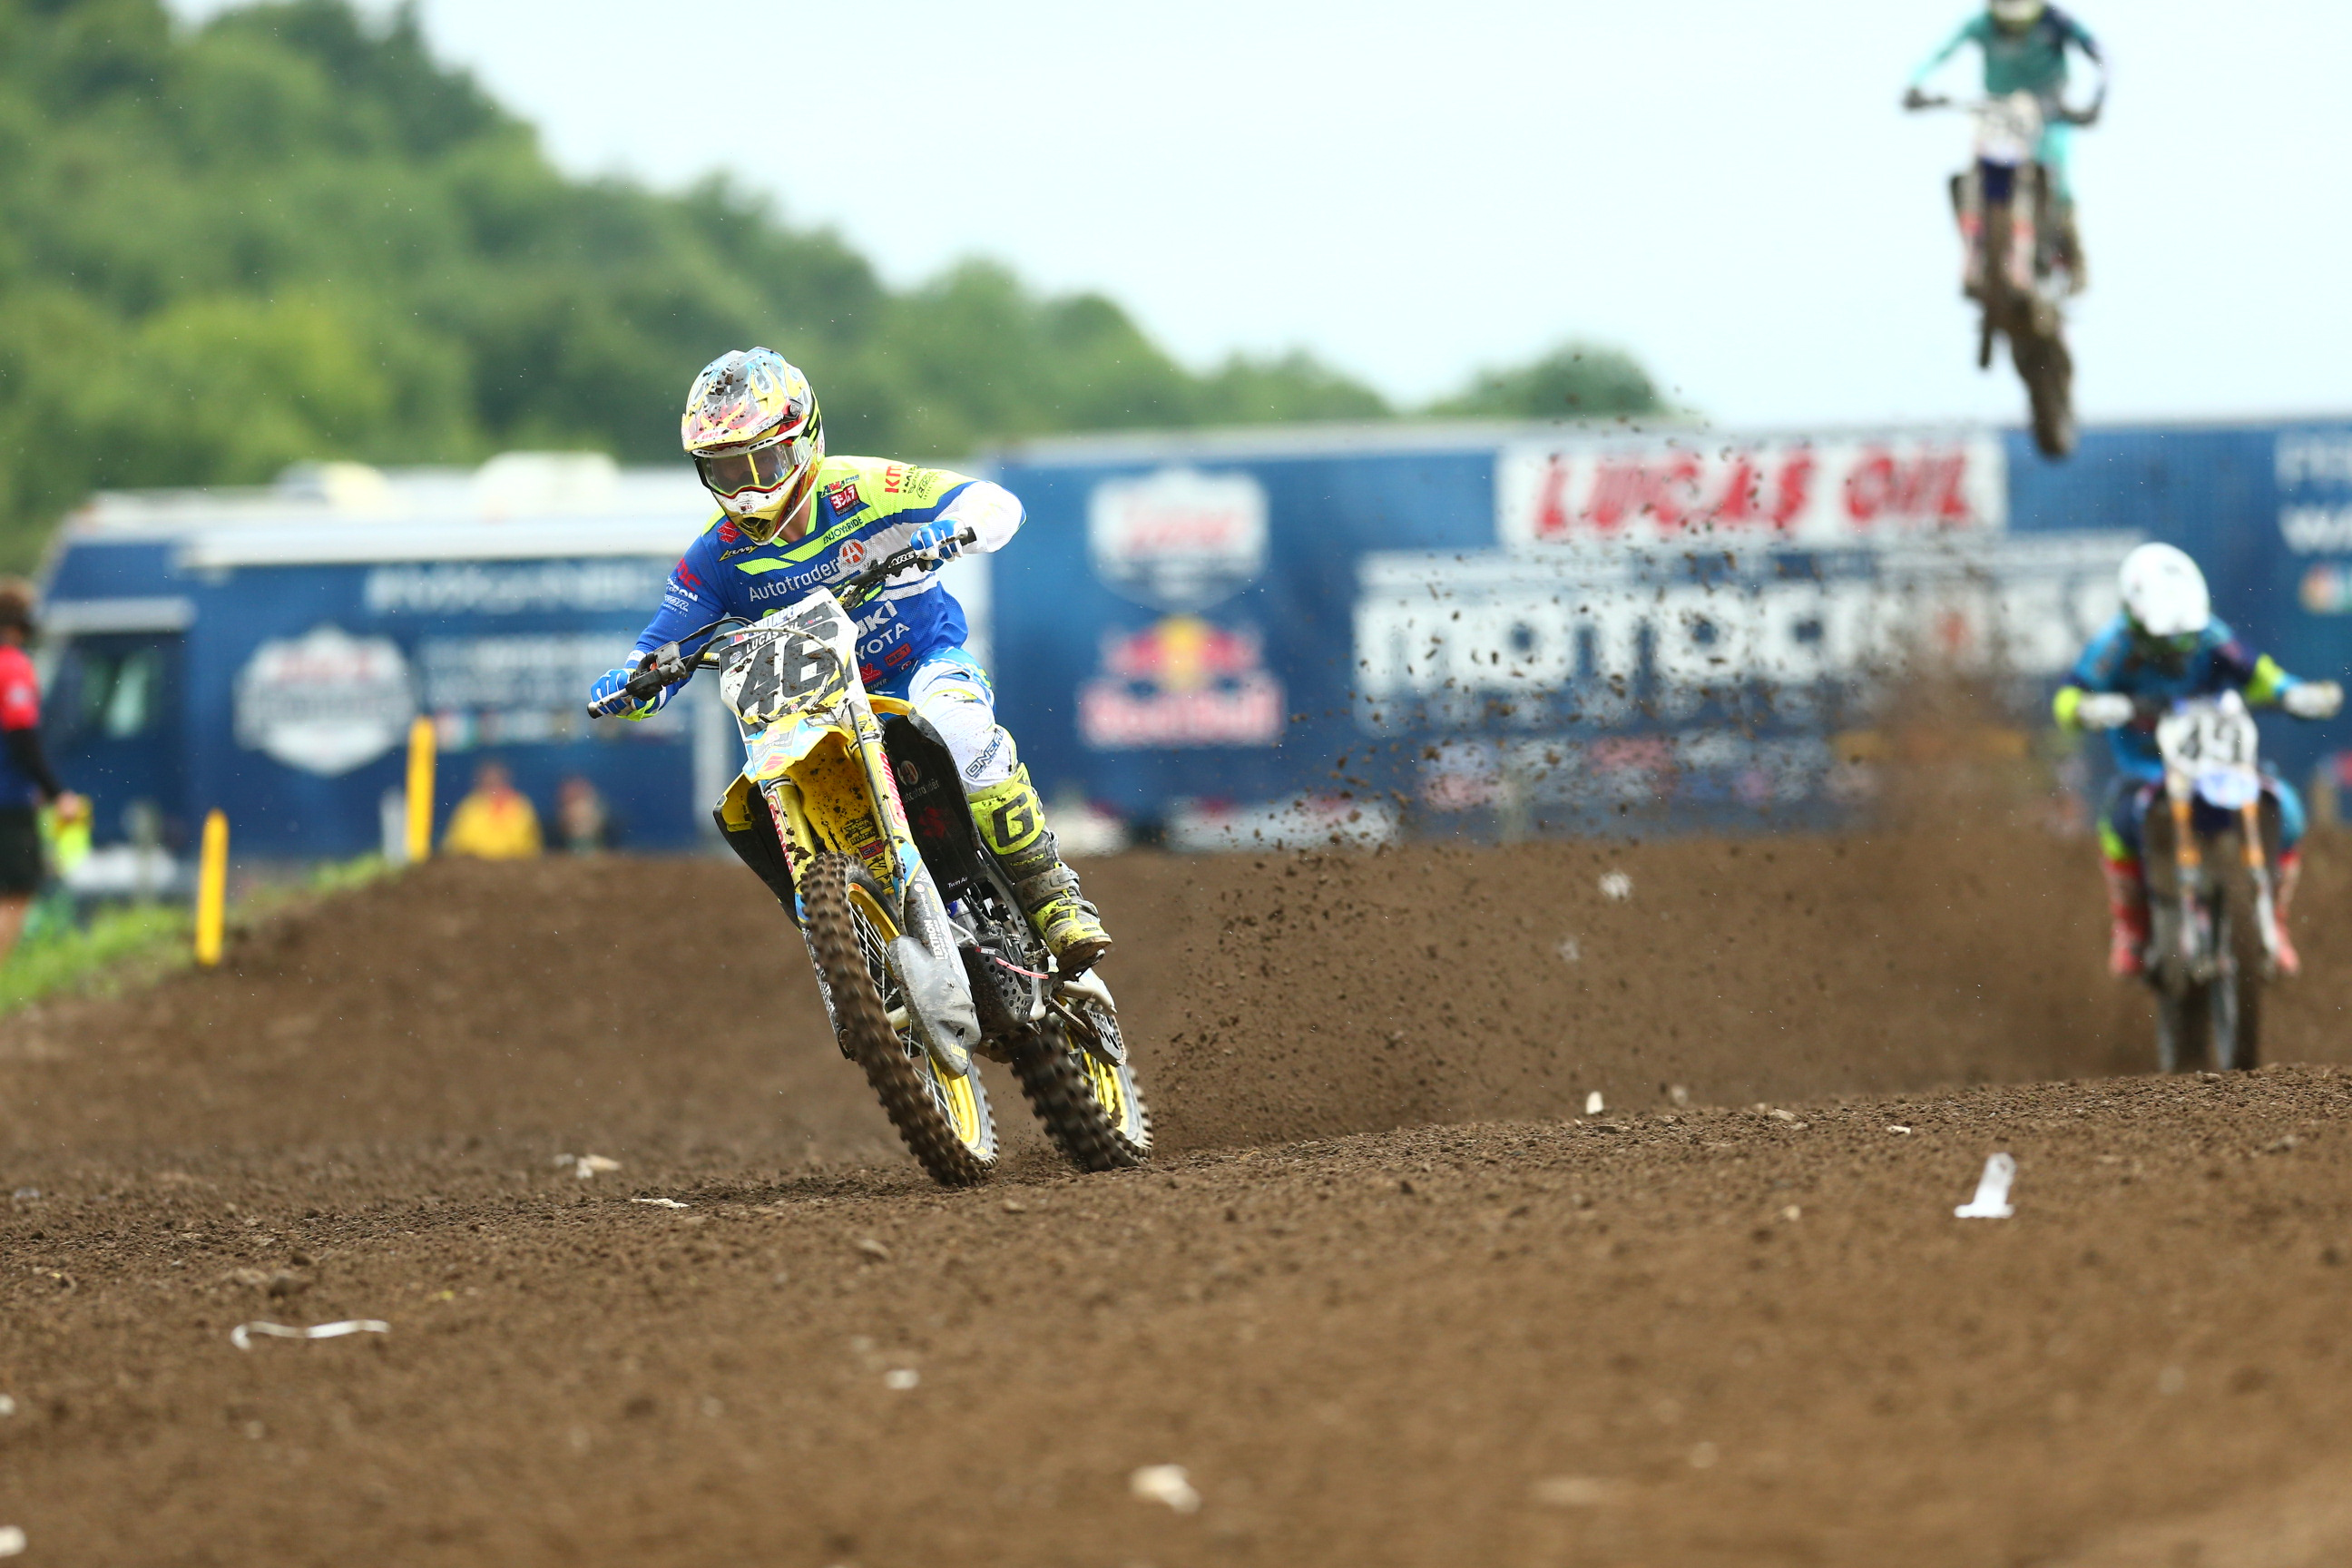 Suzuki Factory Racing - RM-Z450 pilot Justin Hill (46) - Unadilla National